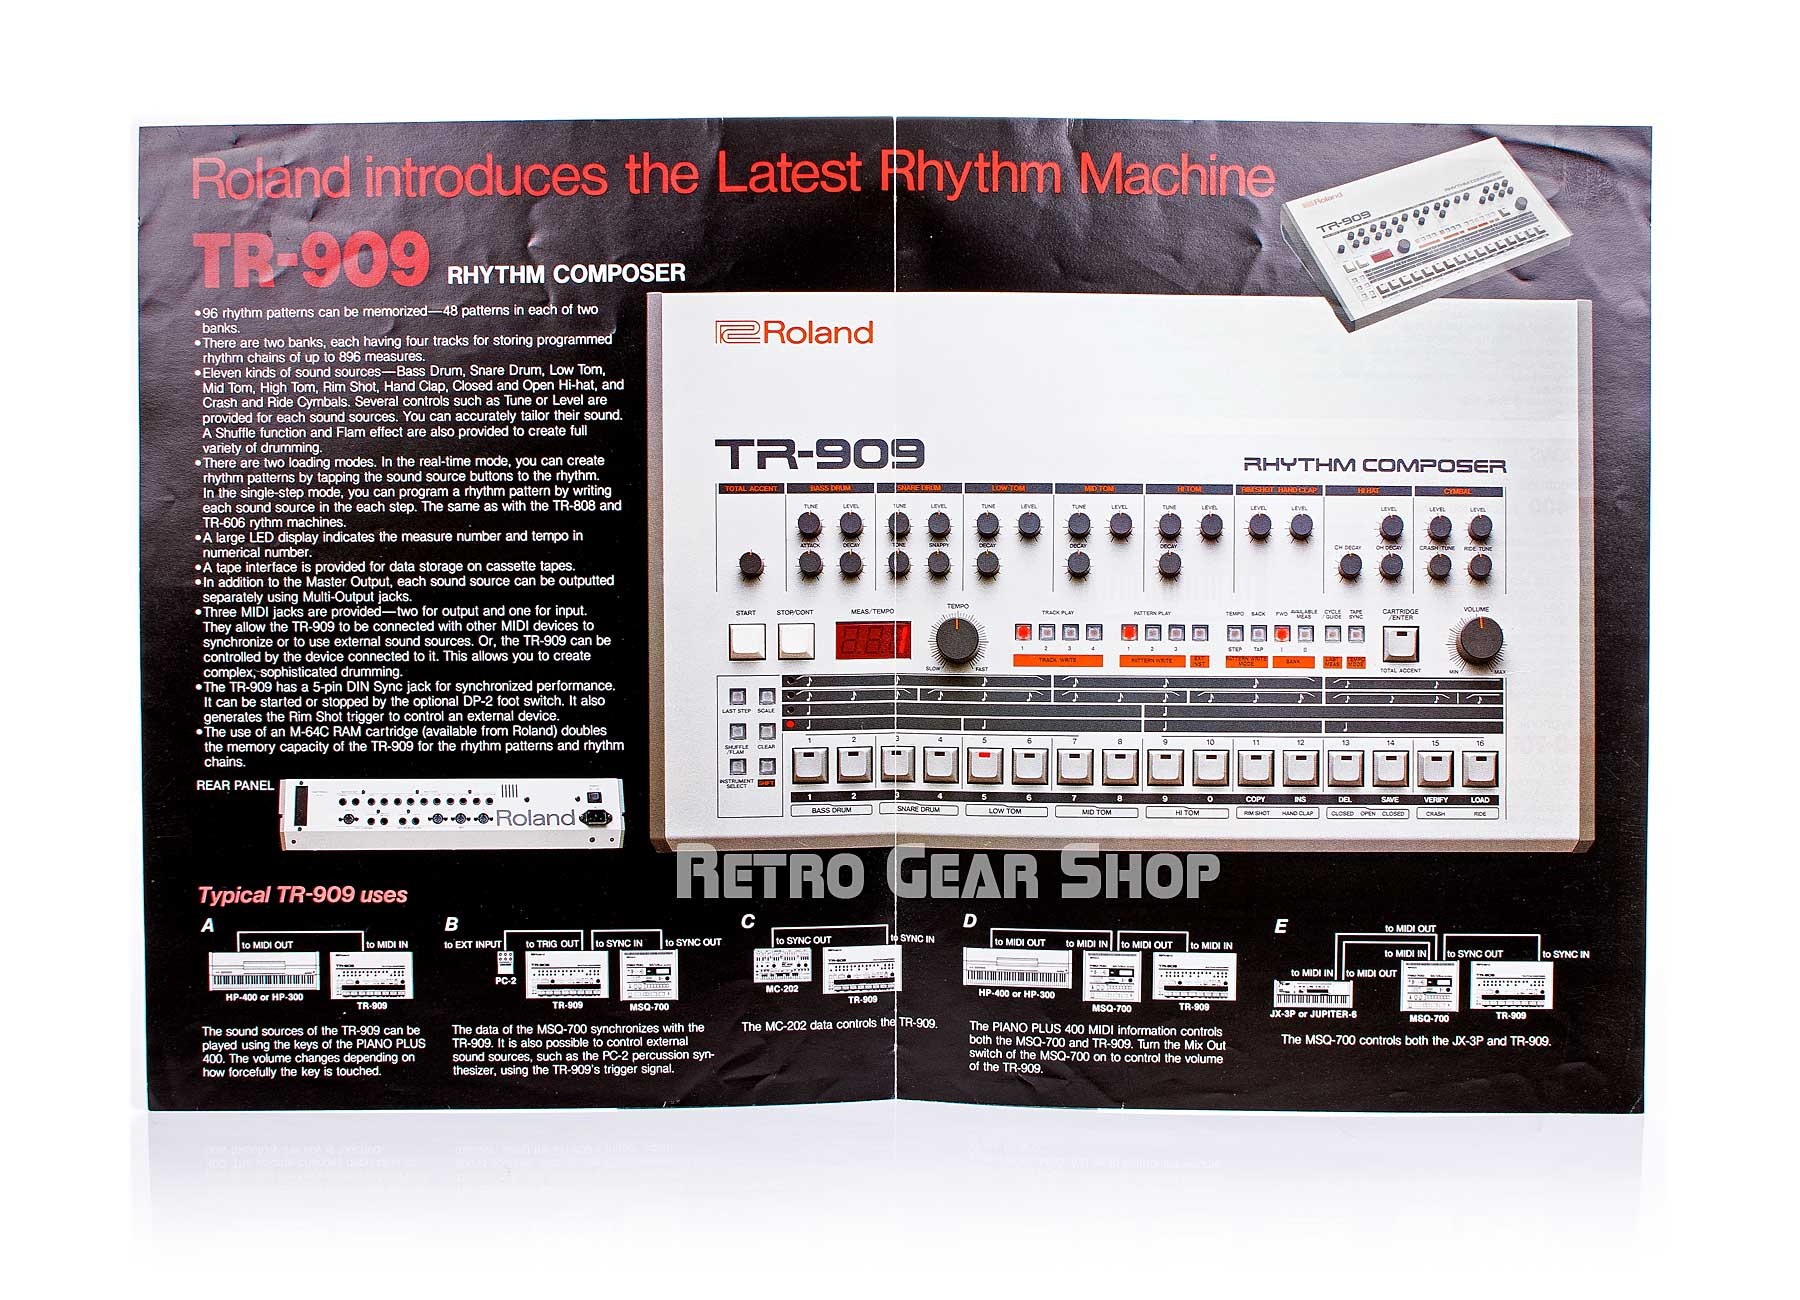 Roland TR-909 Brochure Advertisement Open